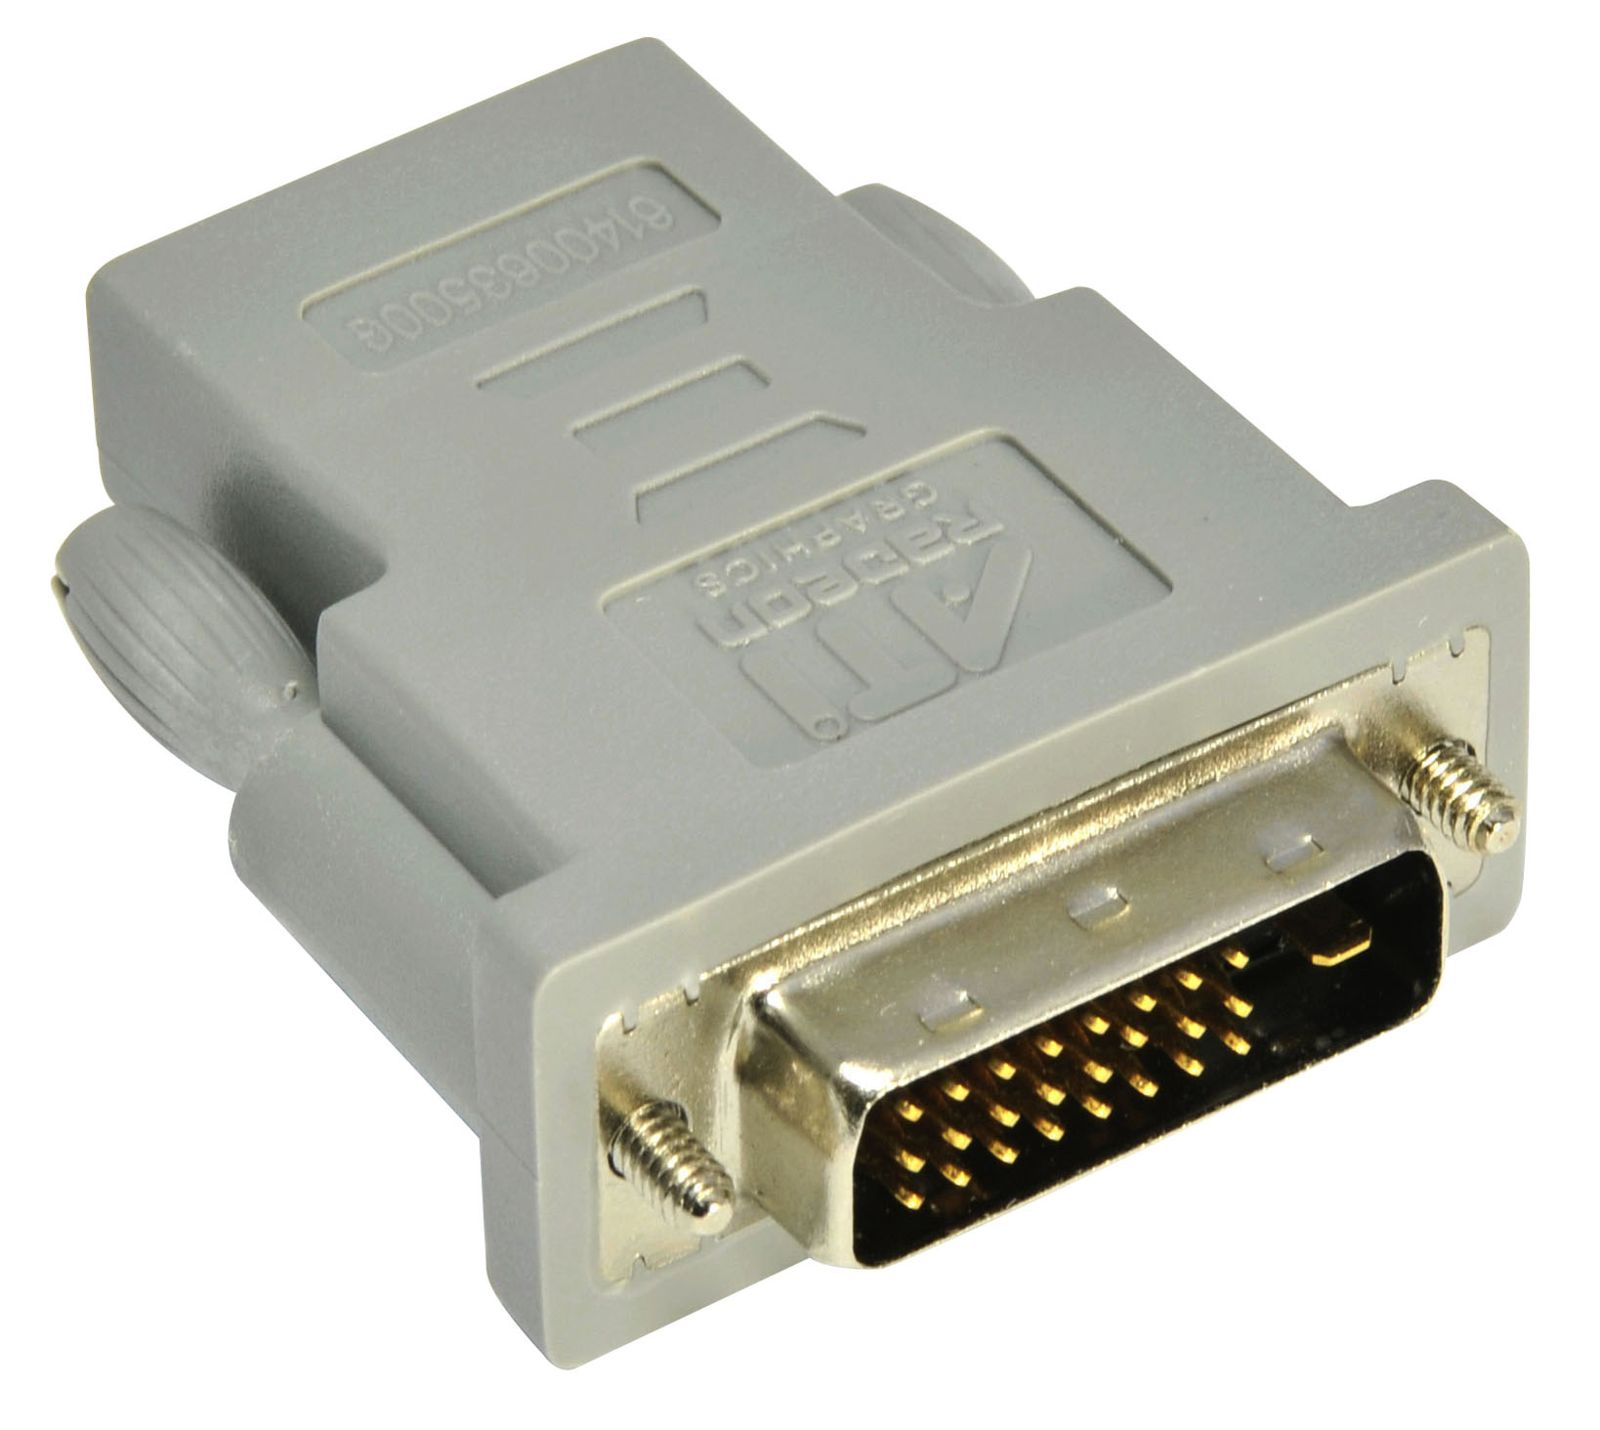 His Dvi To Hdmi Adapter For Amd 7000 6000 5000 Series